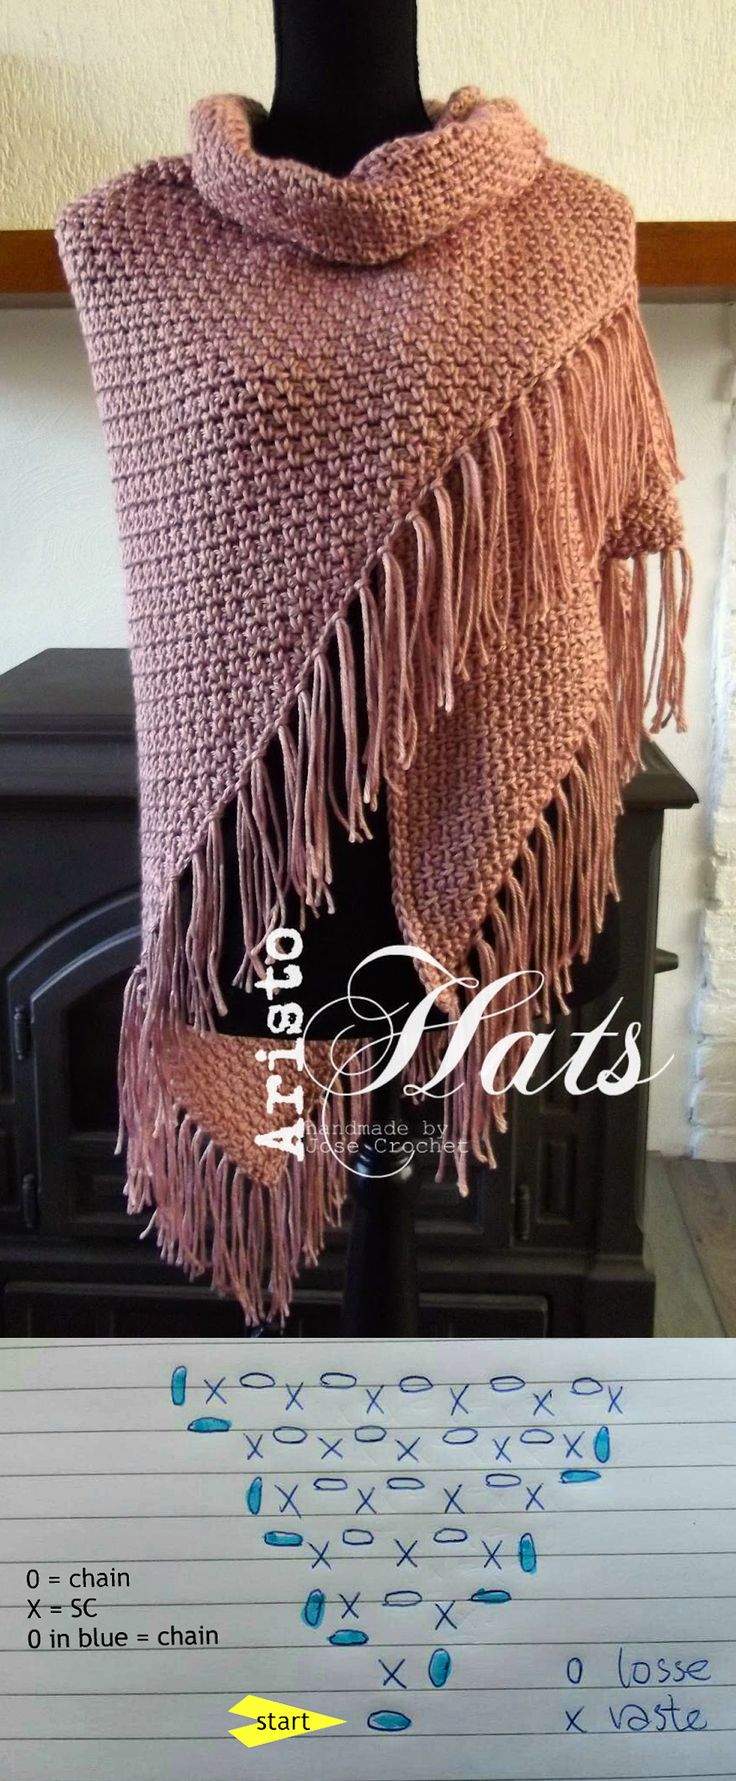 Crochet Shawl in moss stitch